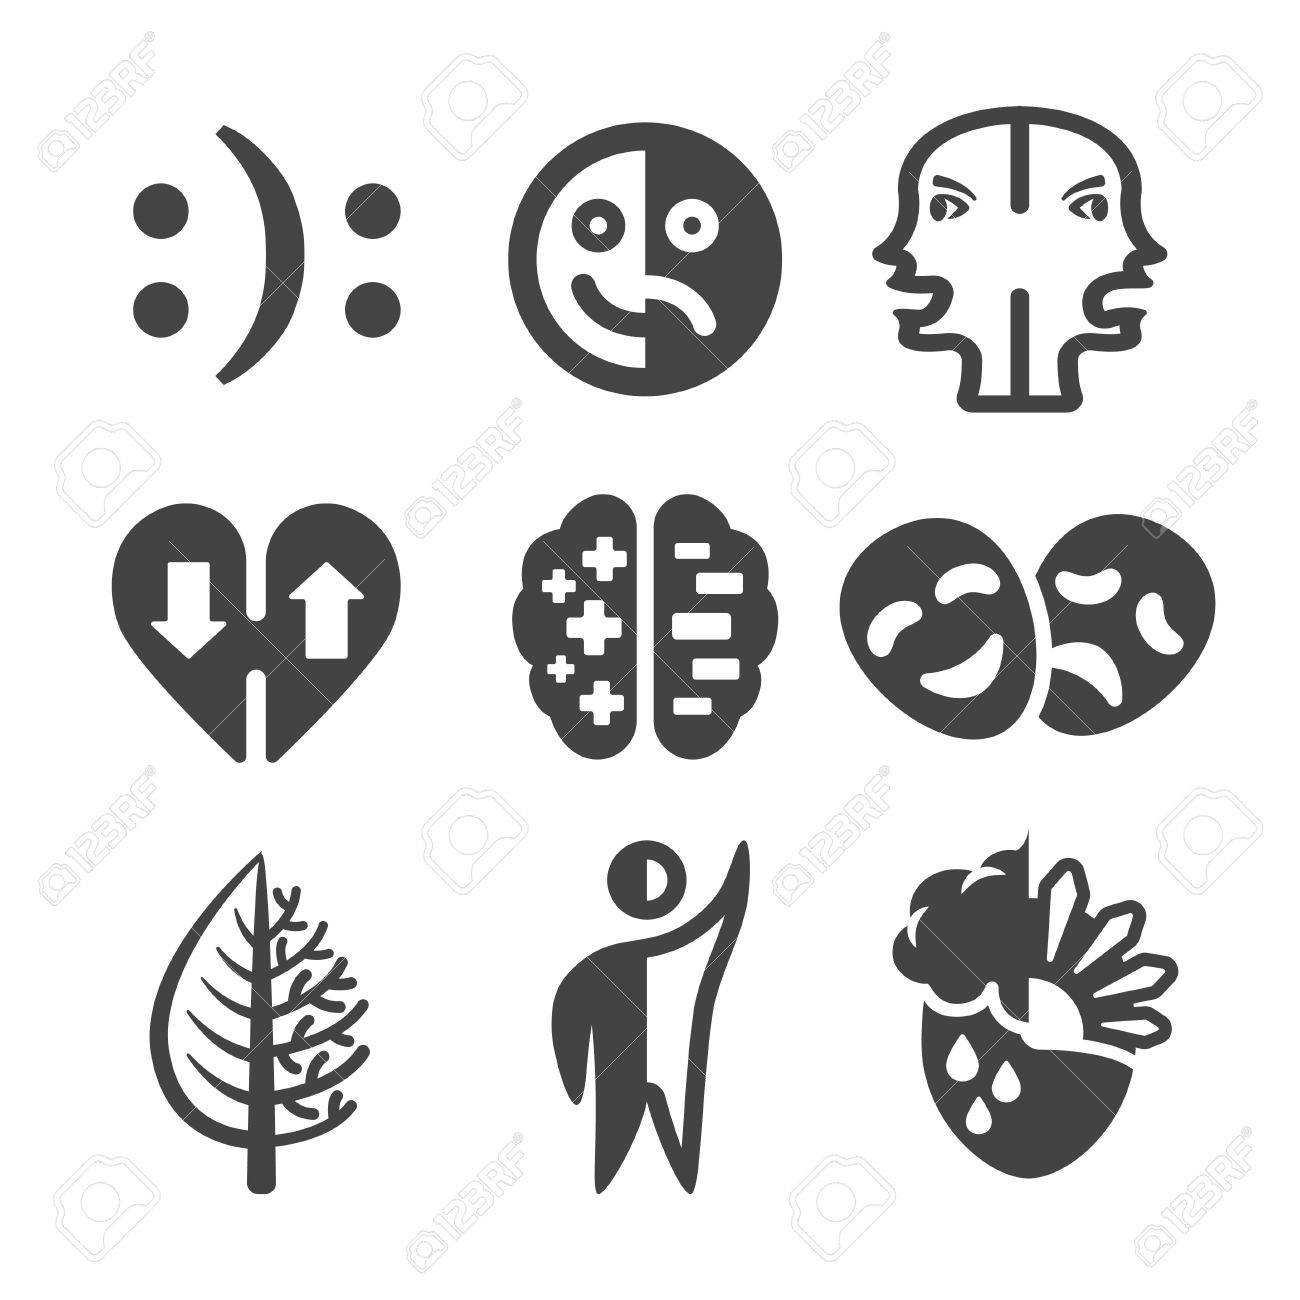 Bipolar disorder icon royalty free cliparts vectors and stock bipolar disorder icon stock vector 84685940 biocorpaavc Gallery